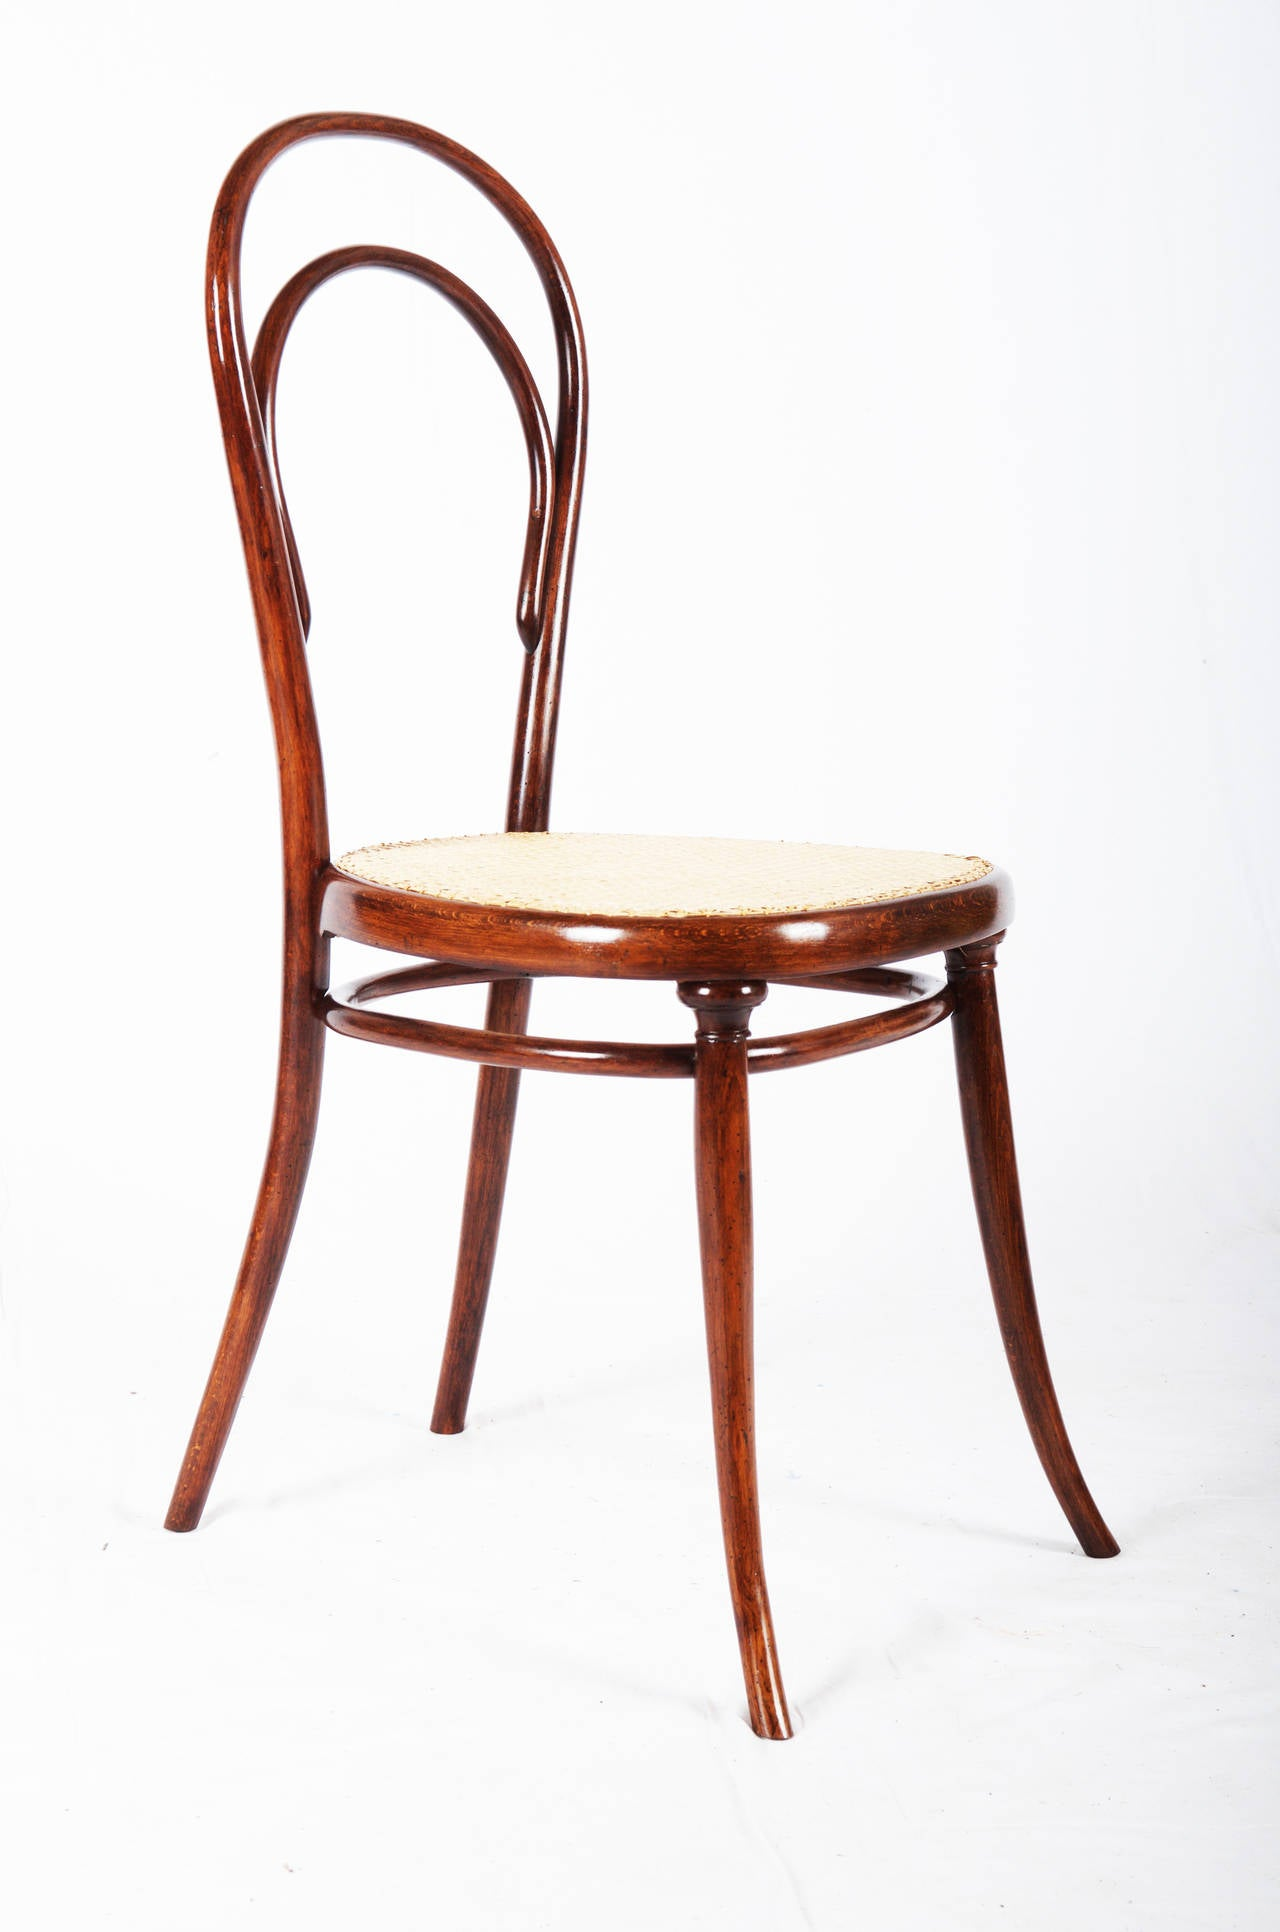 Bent Wood Chairs Thonet Bentwood Side Chair No 14 With First Paper Label